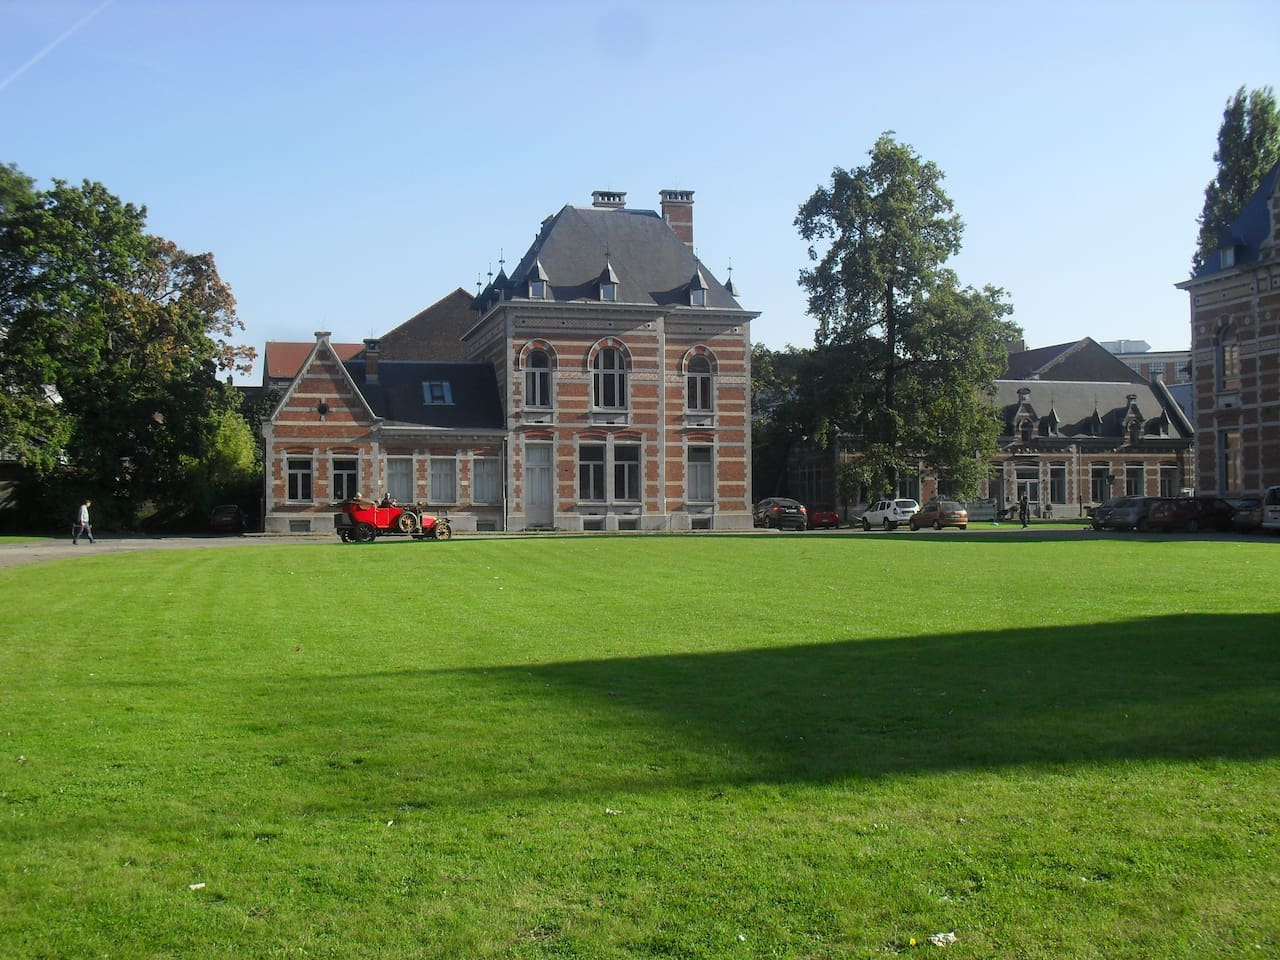 Green heritage site within a park at 7 minutes walk from Brussels South Station